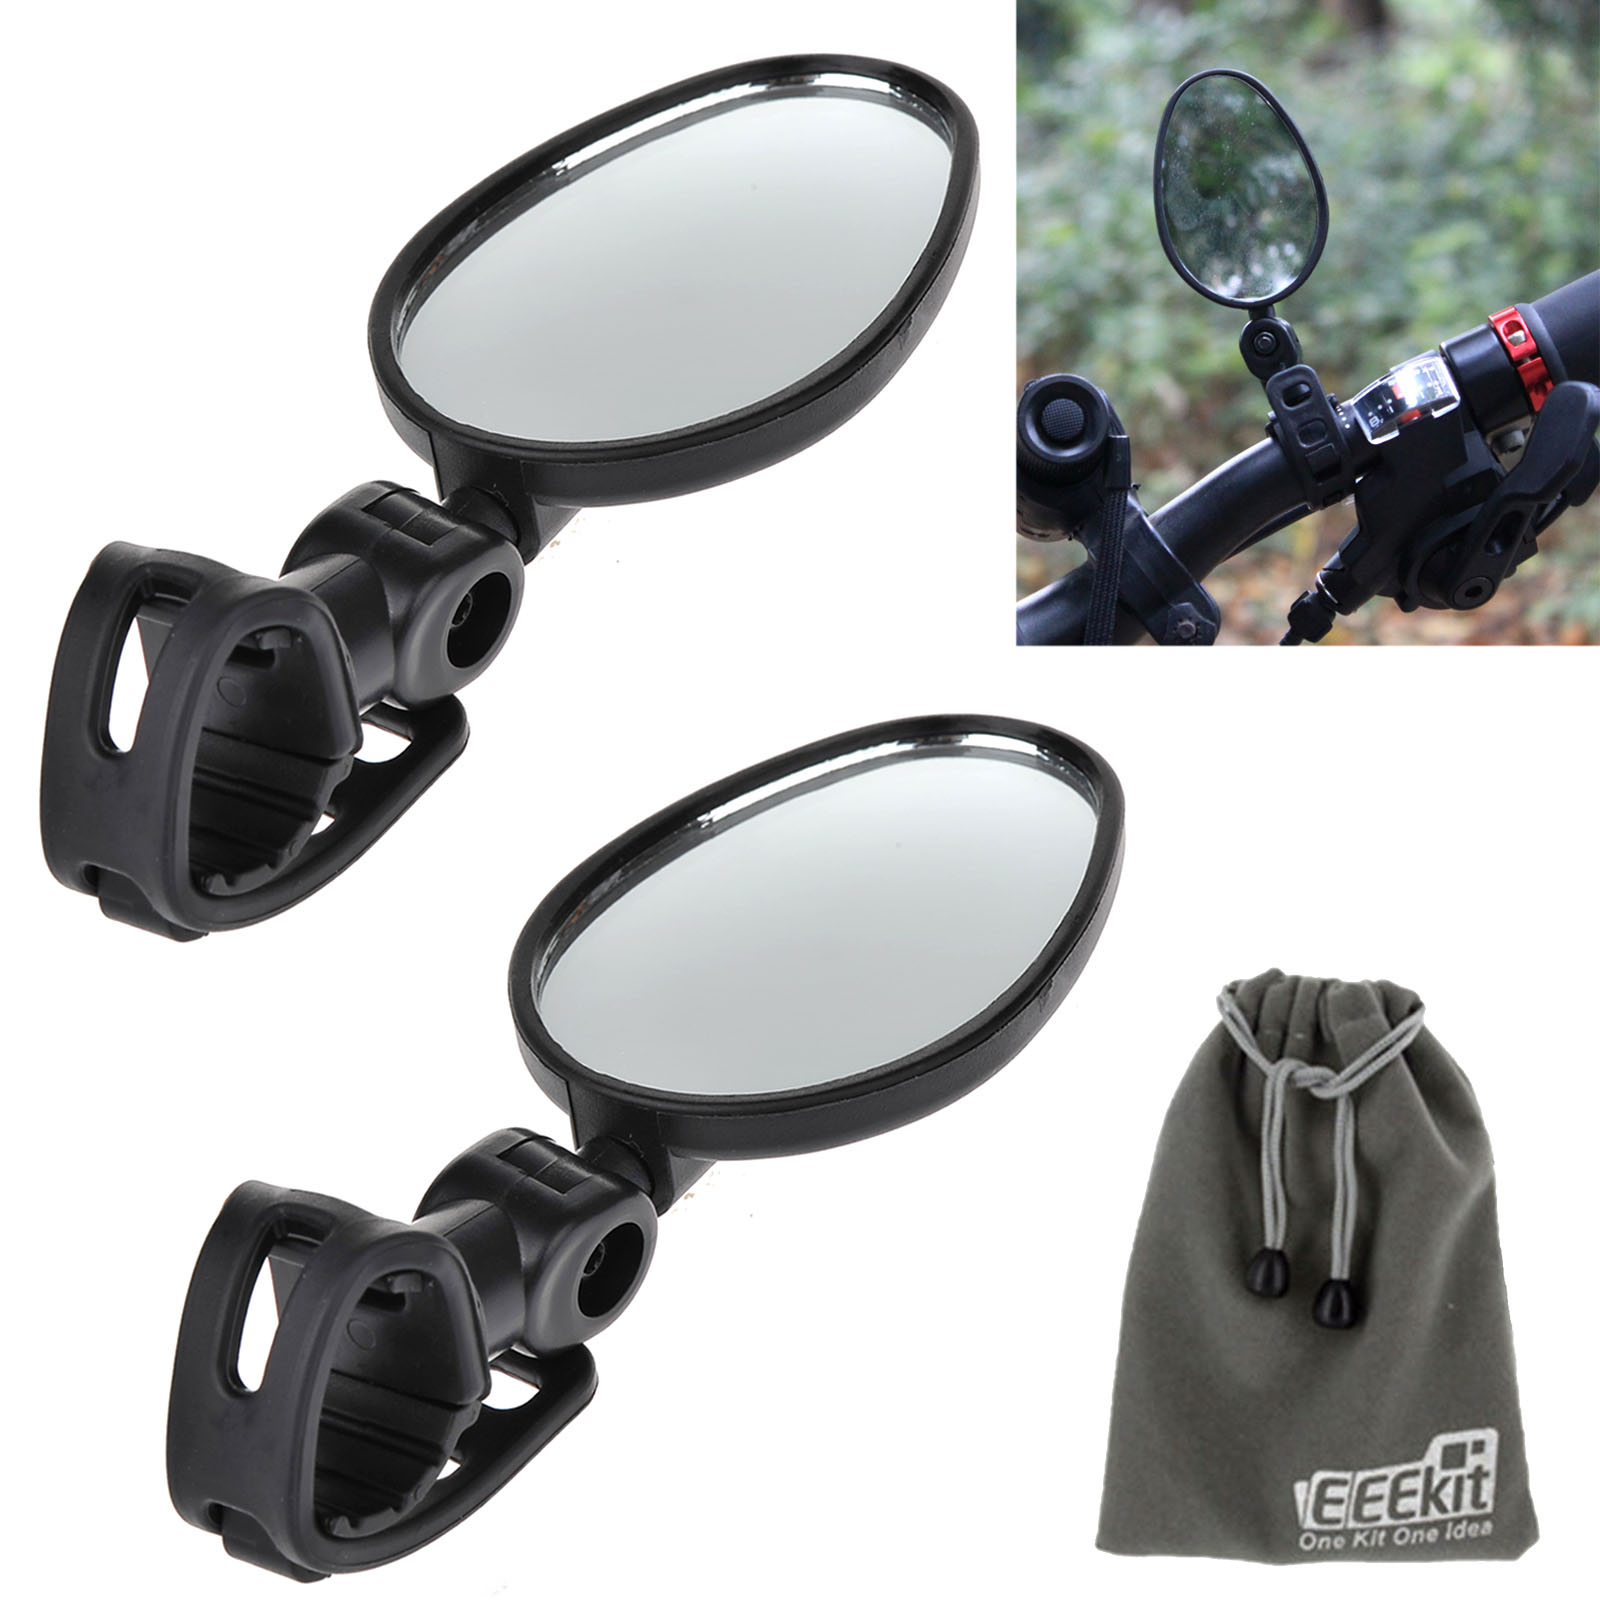 EEEKit 2 Pack Bundle Universal Mini Rotaty Rearview Handlebar Glass Mirror Bundle for Bike Bicycle Cycling